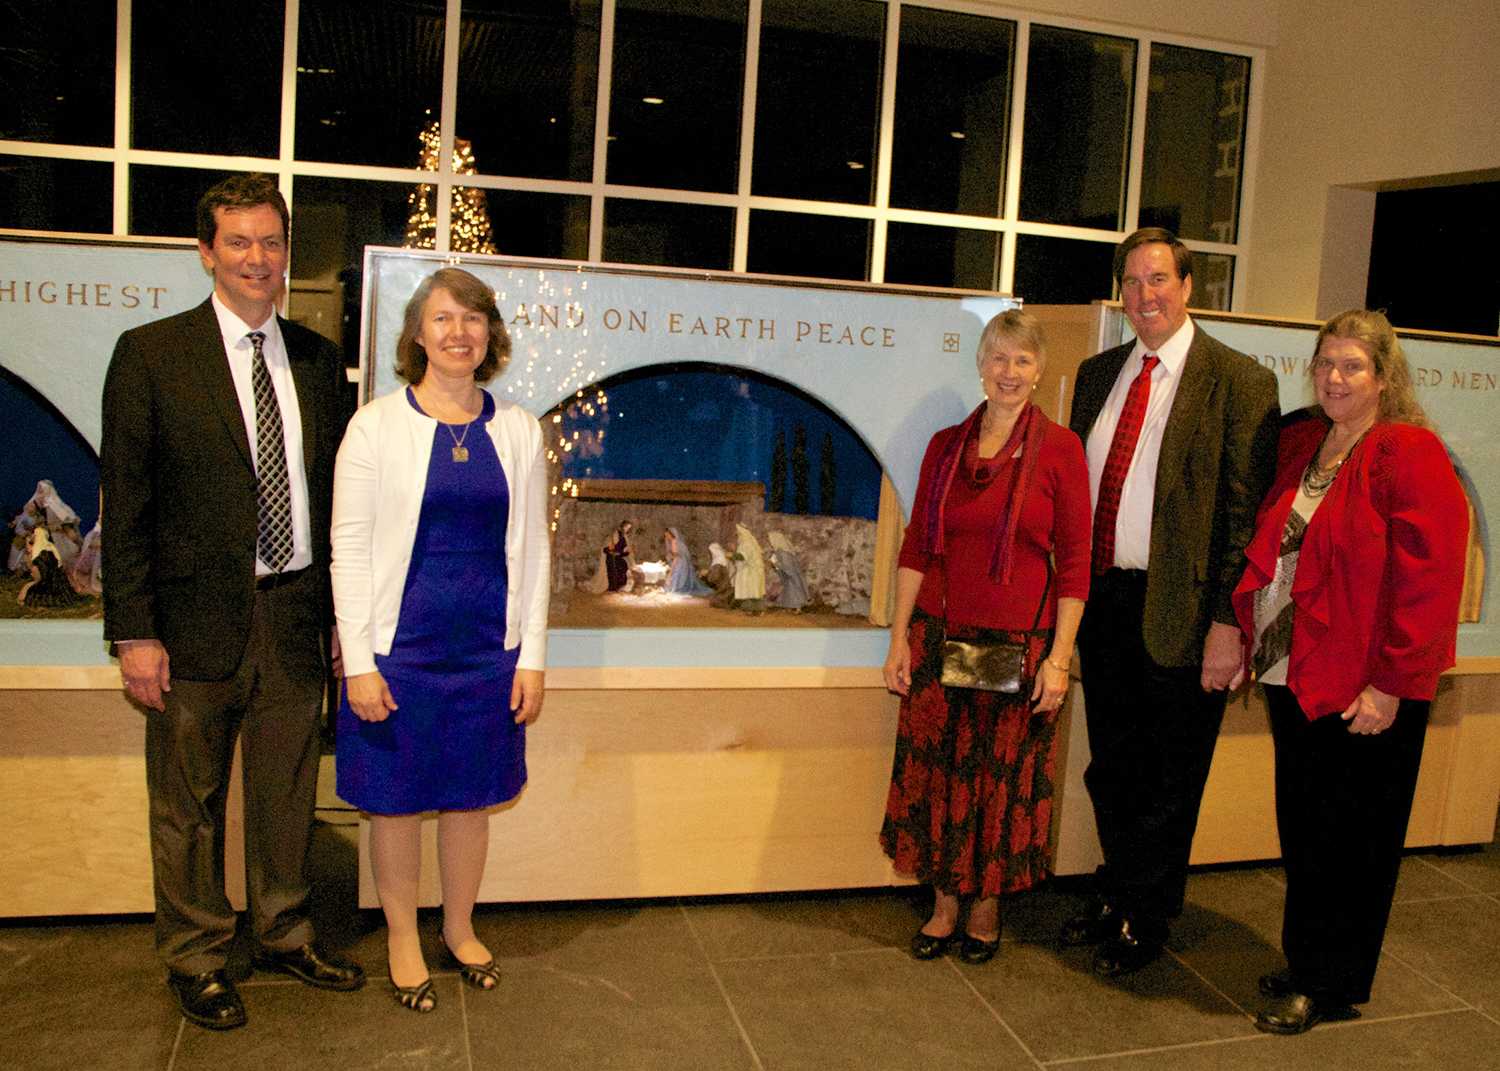 Figure 9: Representatives from Bryn Athyn at a celebration of the installation of the Eisenhower Nativity at the National Military Park Museum and Visitor Center. From left to right, Brian Henderson (director of Glencairn Museum), Kirsten Hansen Gyllenhaal (museum researcher at Glencairn Museum), Lynn Pitcairn Genzlinger, Ken Schauder, and Glynn Cole Schauder. Lynn and Glynn are granddaughters of Raymond and Mildred Pitcairn. Not pictured: Ed Gyllenhaal (curator of Glencairn Museum). Photo: Ed Gyllenhaal.